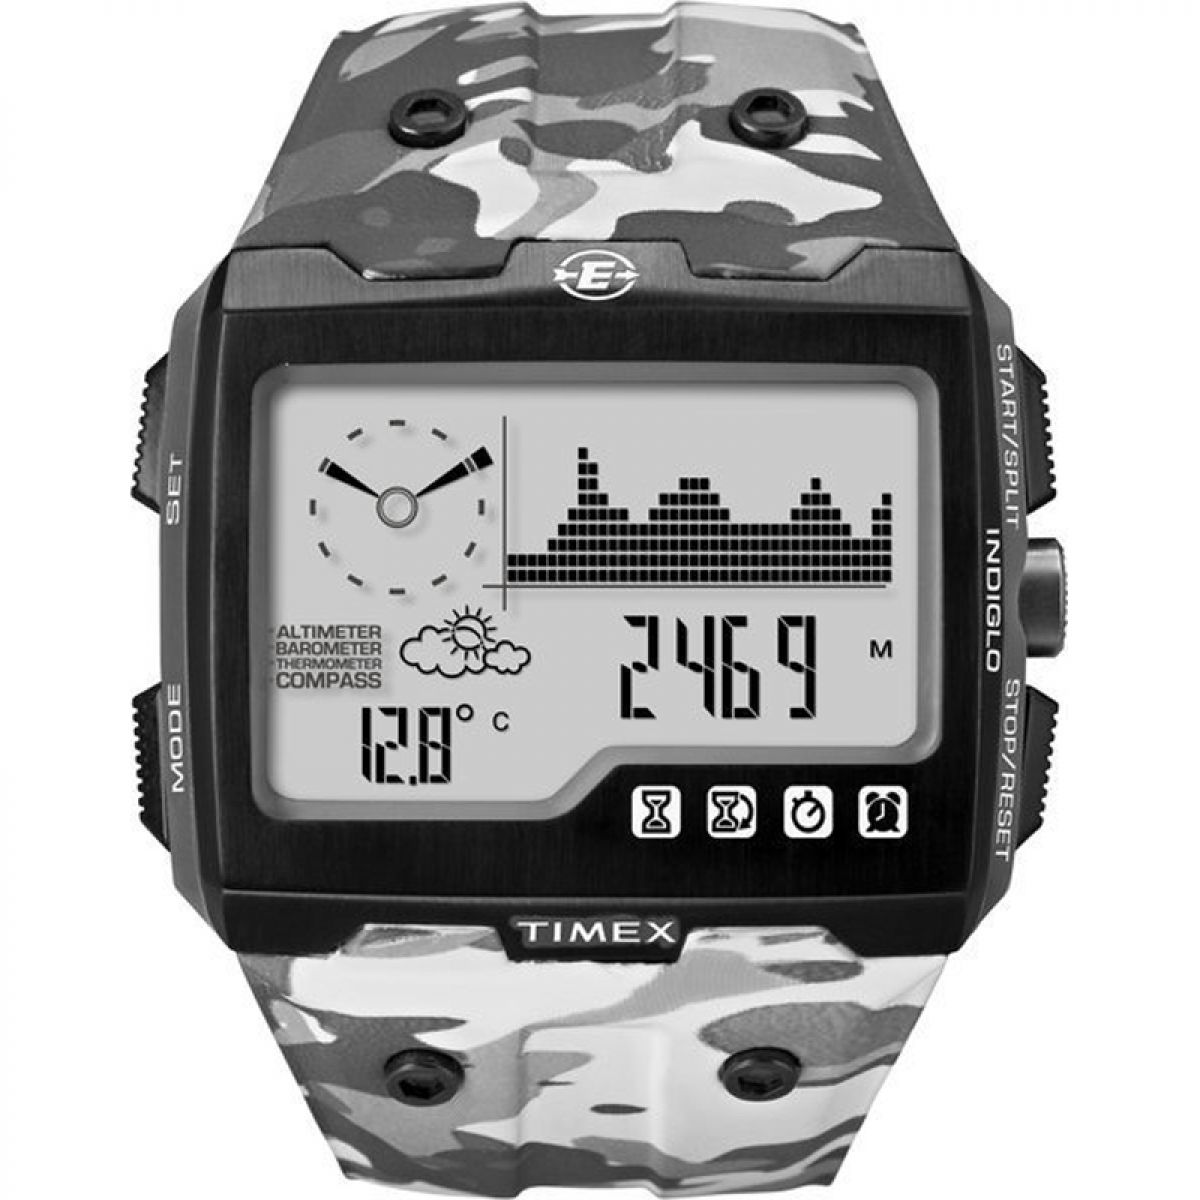 gents timex expedition ws4 alarm chronograph watch t49841 rh watchshop com Timex Expedition WS4 Watch Timex Expedition WS4 Watch On Wrist